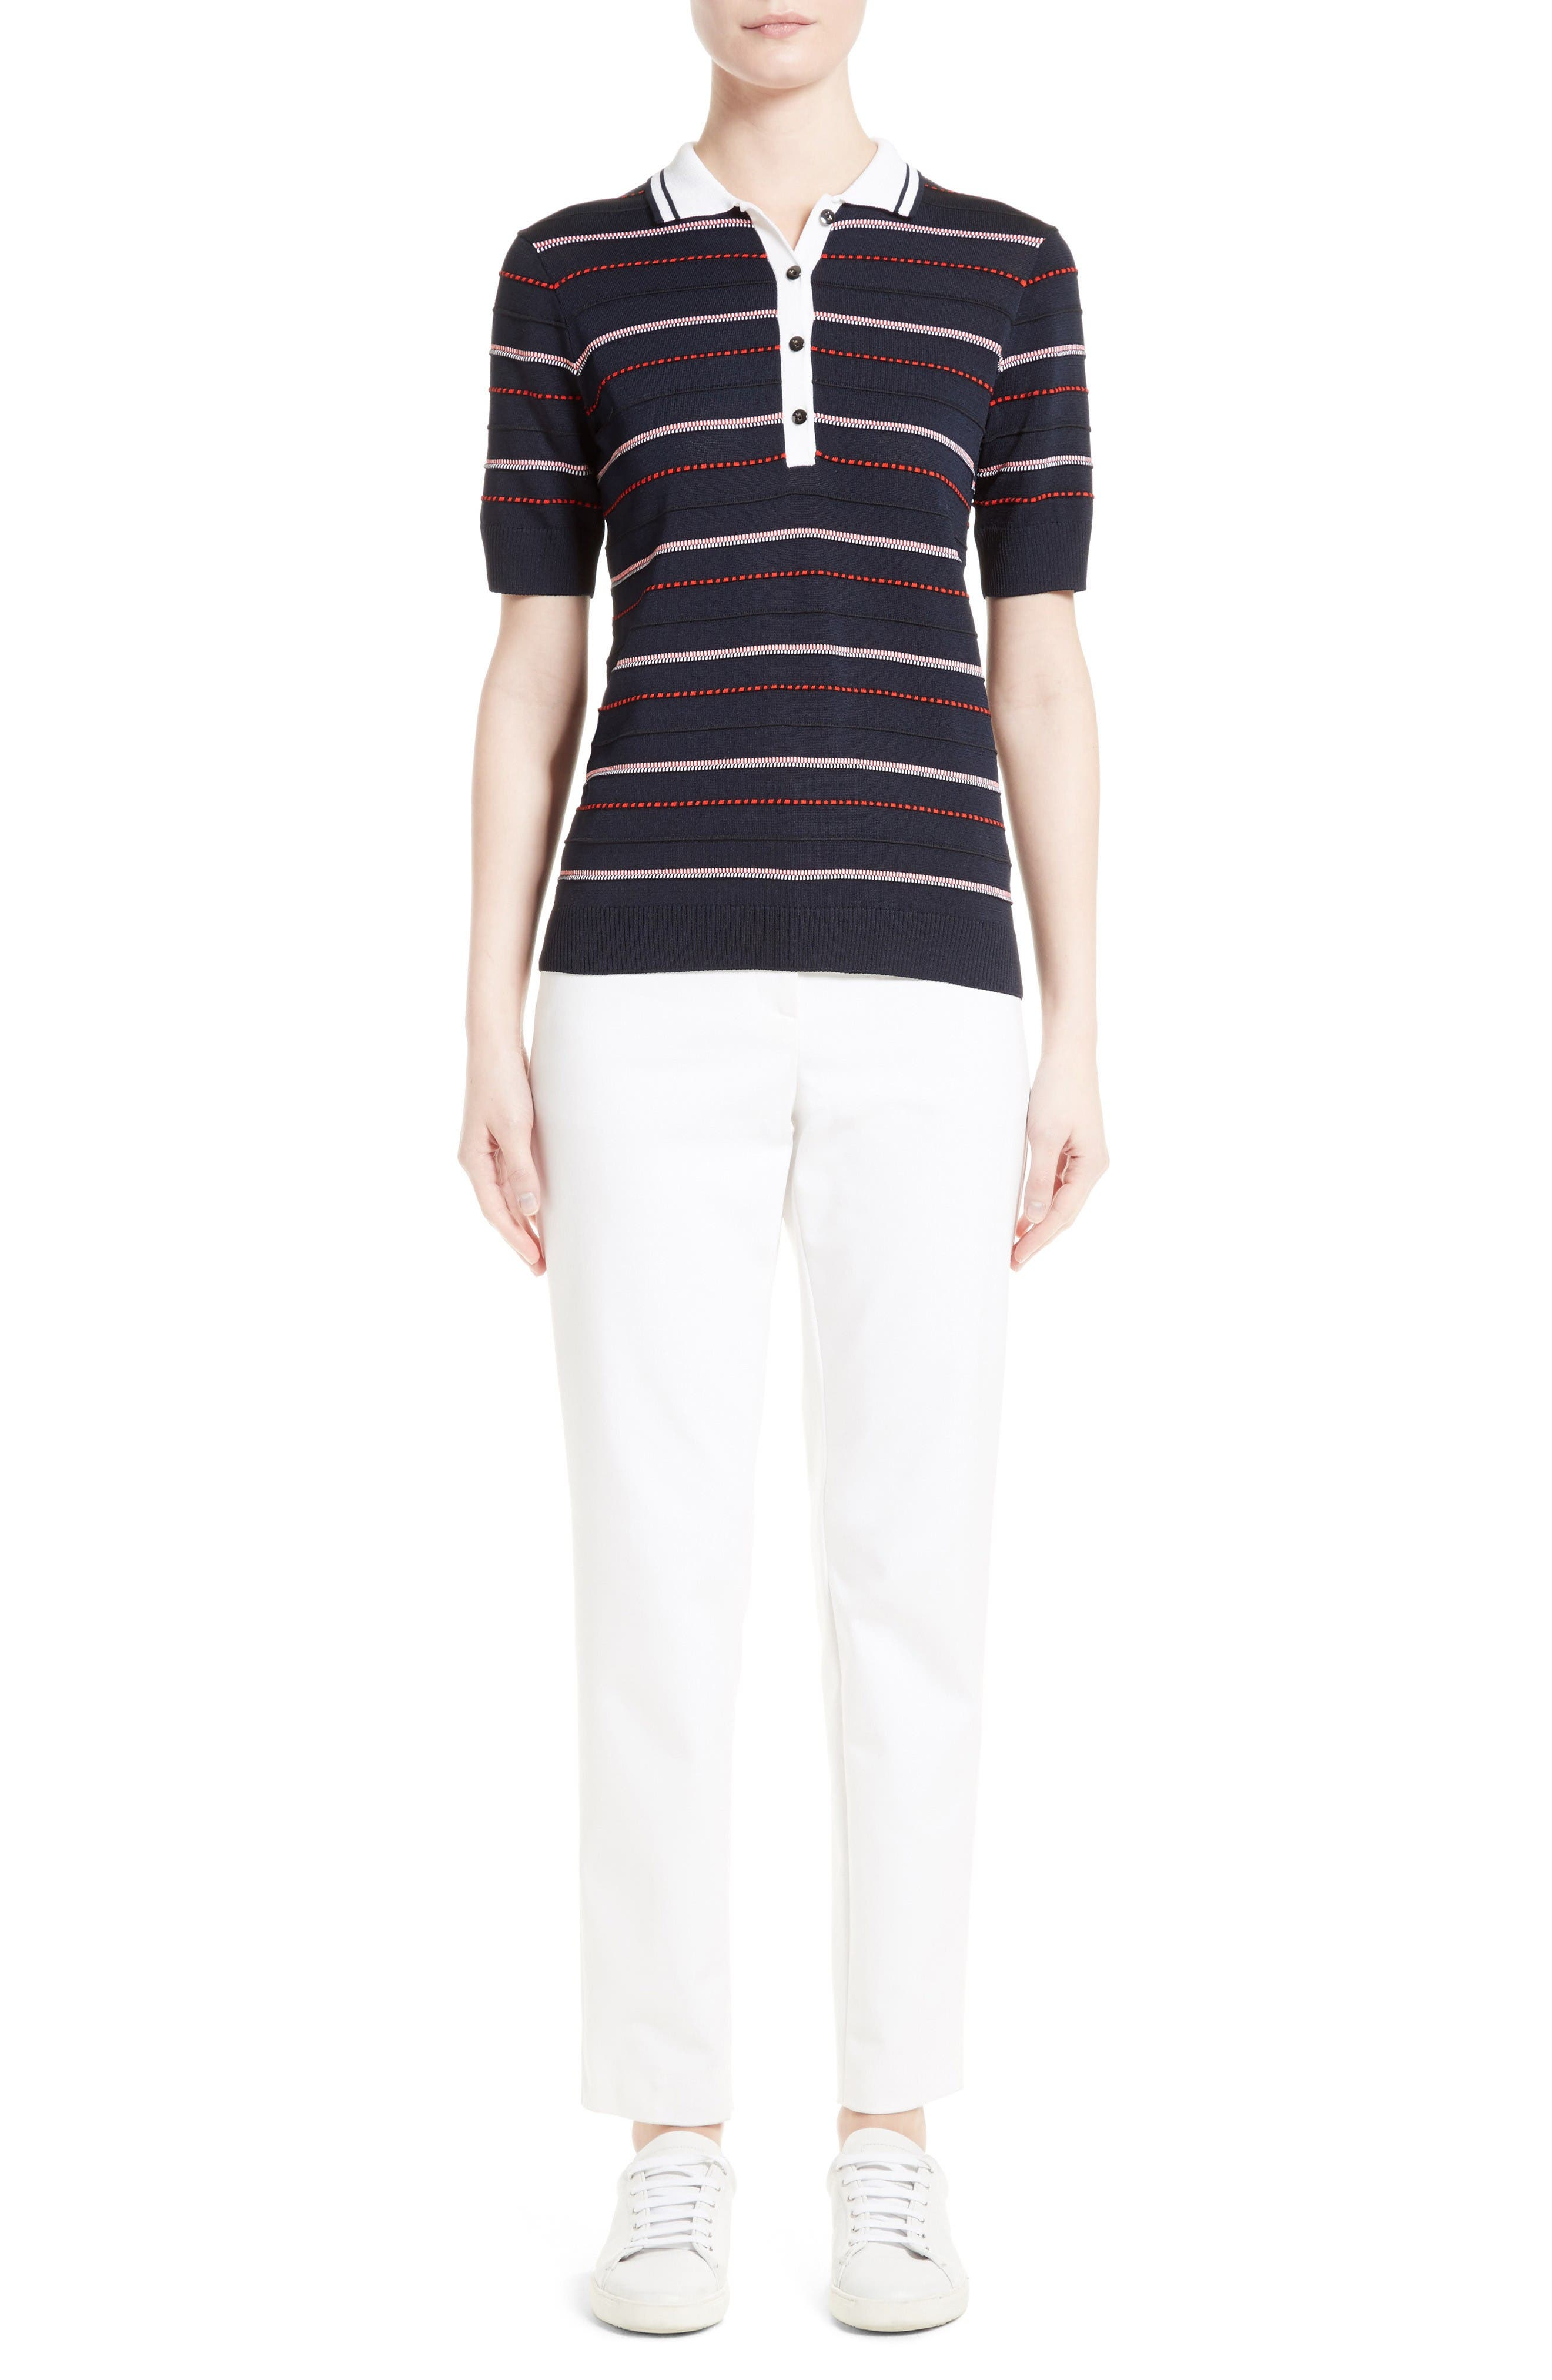 St. John Collection Polo & Pants Outfit with Accessories